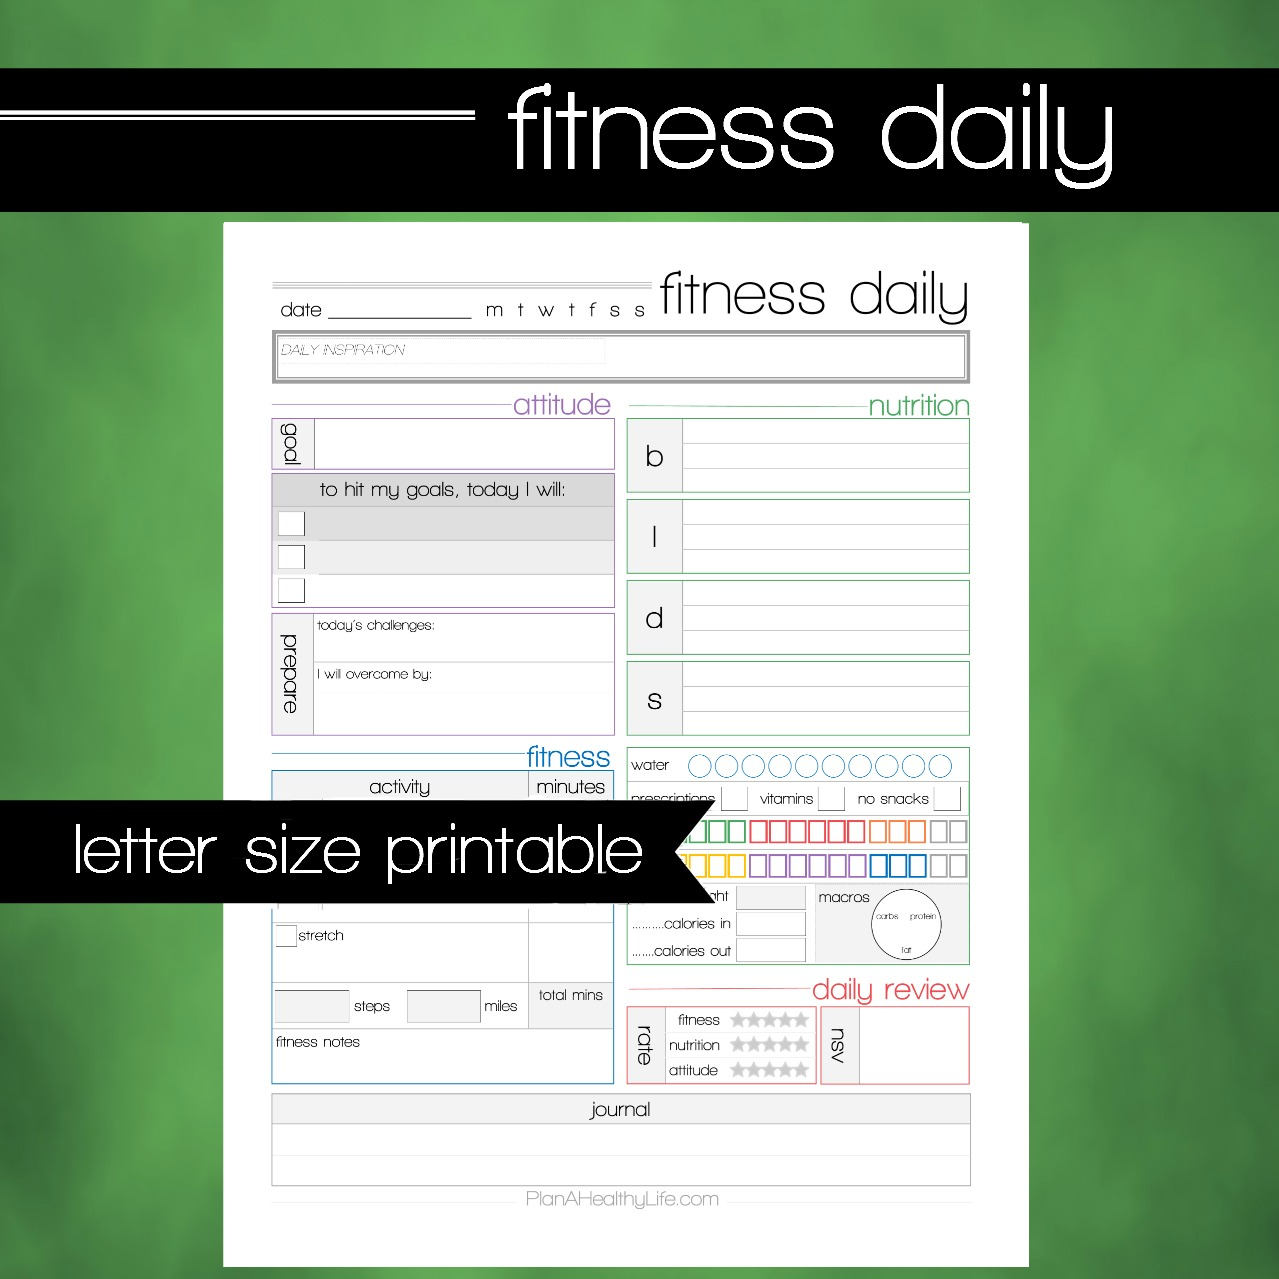 Printable Fitness Health Daily Tracking Worksheet 85x11 Letter